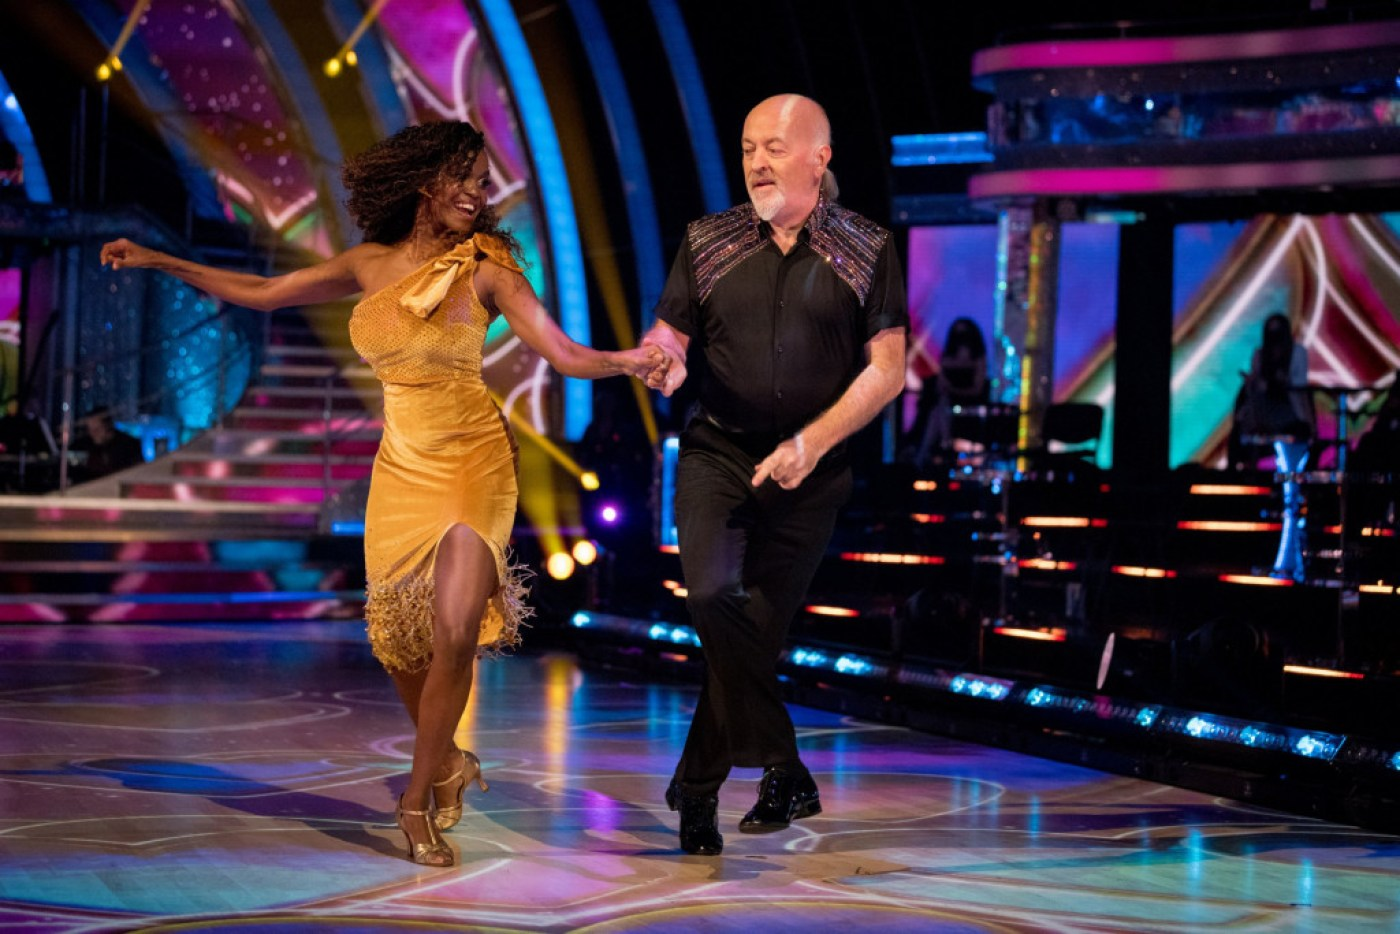 For use in UK, Ireland or Benelux countries only Undated BBC handout photo of Bill Bailey and Oti Mabuse, during the launch show for the BBC1 dancing contest, Strictly Come Dancing. PA Photo. Issue date: Saturday October 17, 2020. See PA story SHOWBIZ Strictly. Photo credit should read: BBC/PA Wire NOTE TO EDITORS: Not for use more than 21 days after issue. You may use this picture without charge only for the purpose of publicising or reporting on current BBC programming, personnel or other BBC output or activity within 21 days of issue. Any use after that time MUST be cleared through BBC Picture Publicity. Please credit the image to the BBC and any named photographer or independent programme maker, as described in the caption.